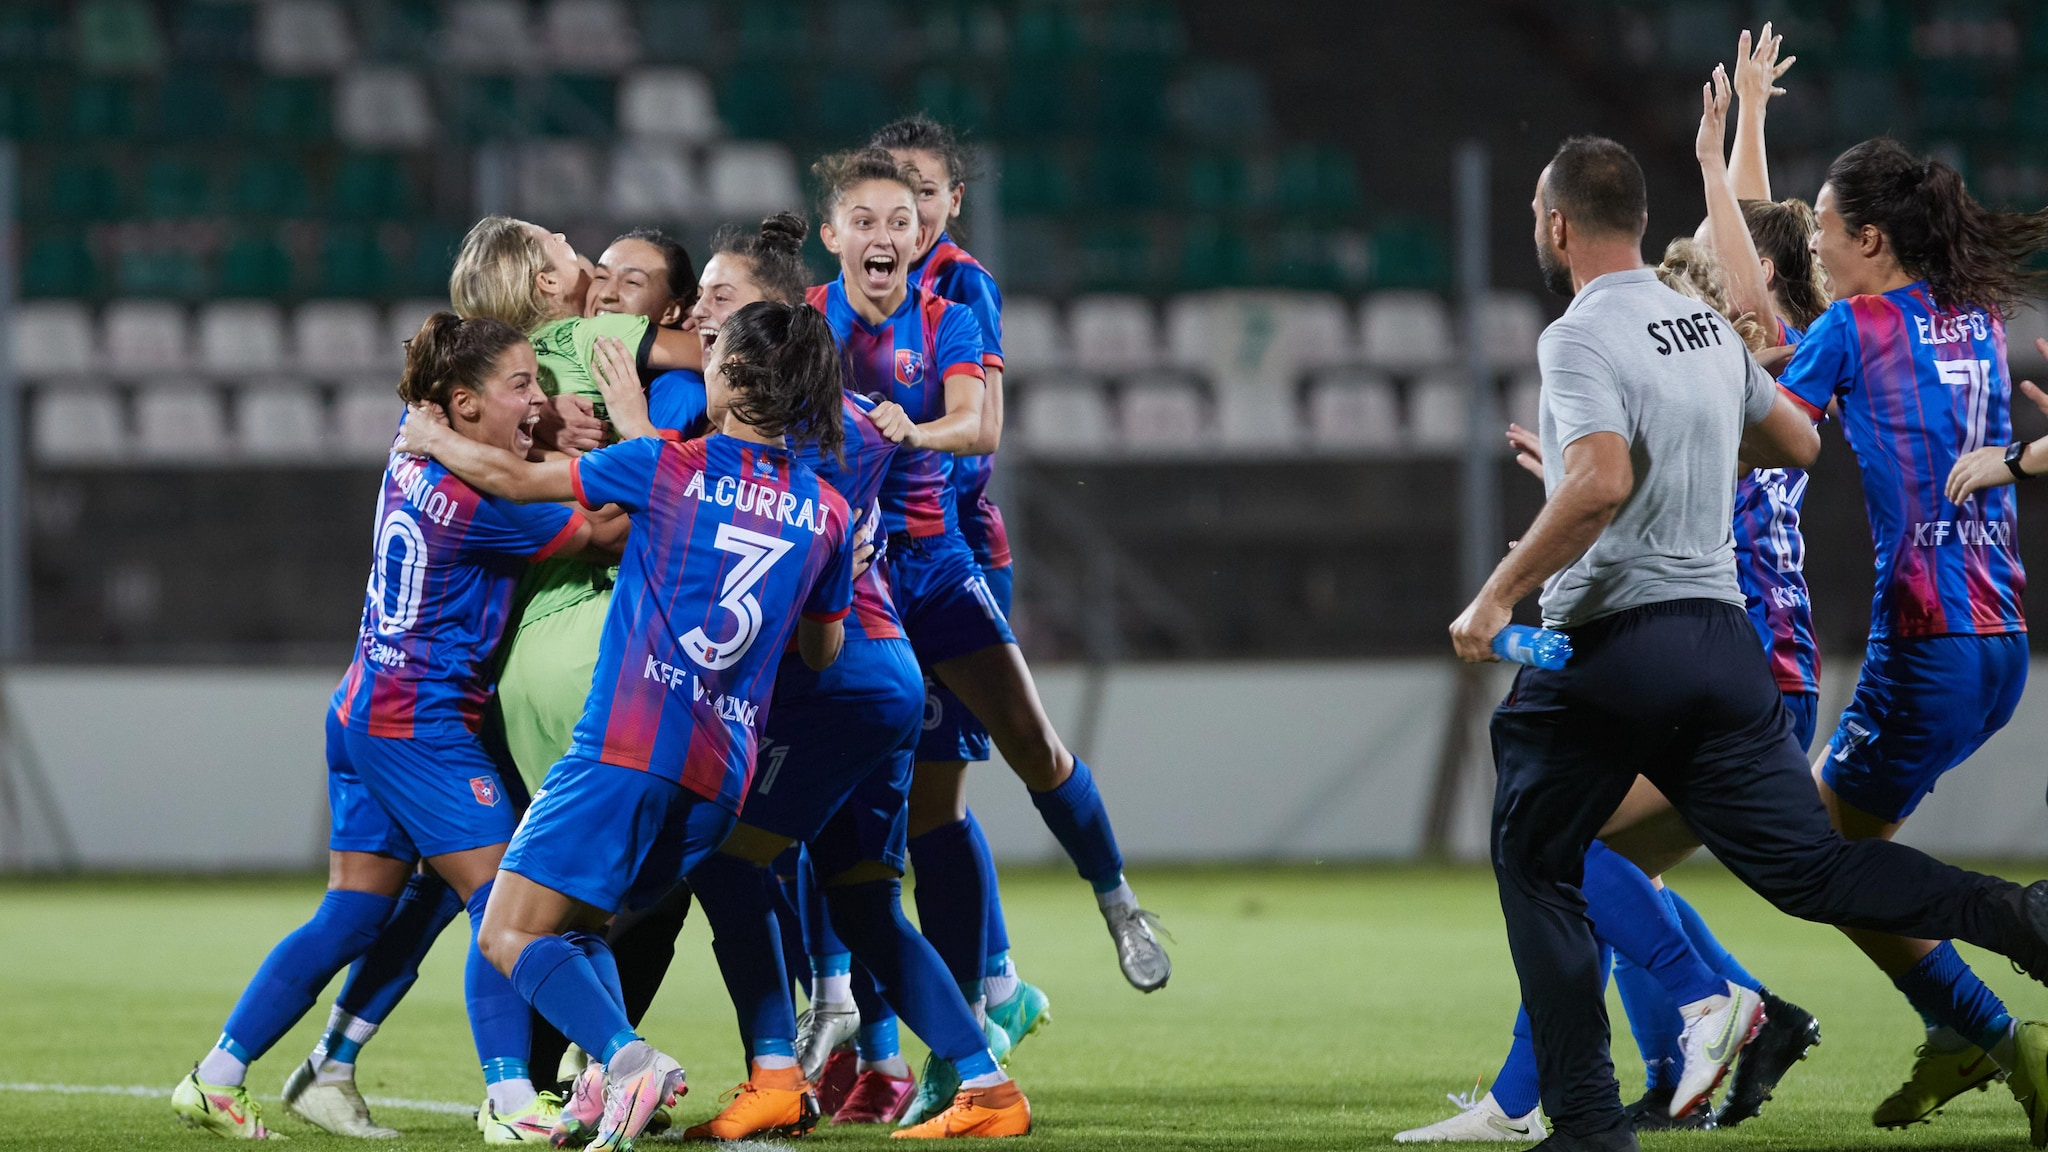 Women's Champions League round 1: see who through